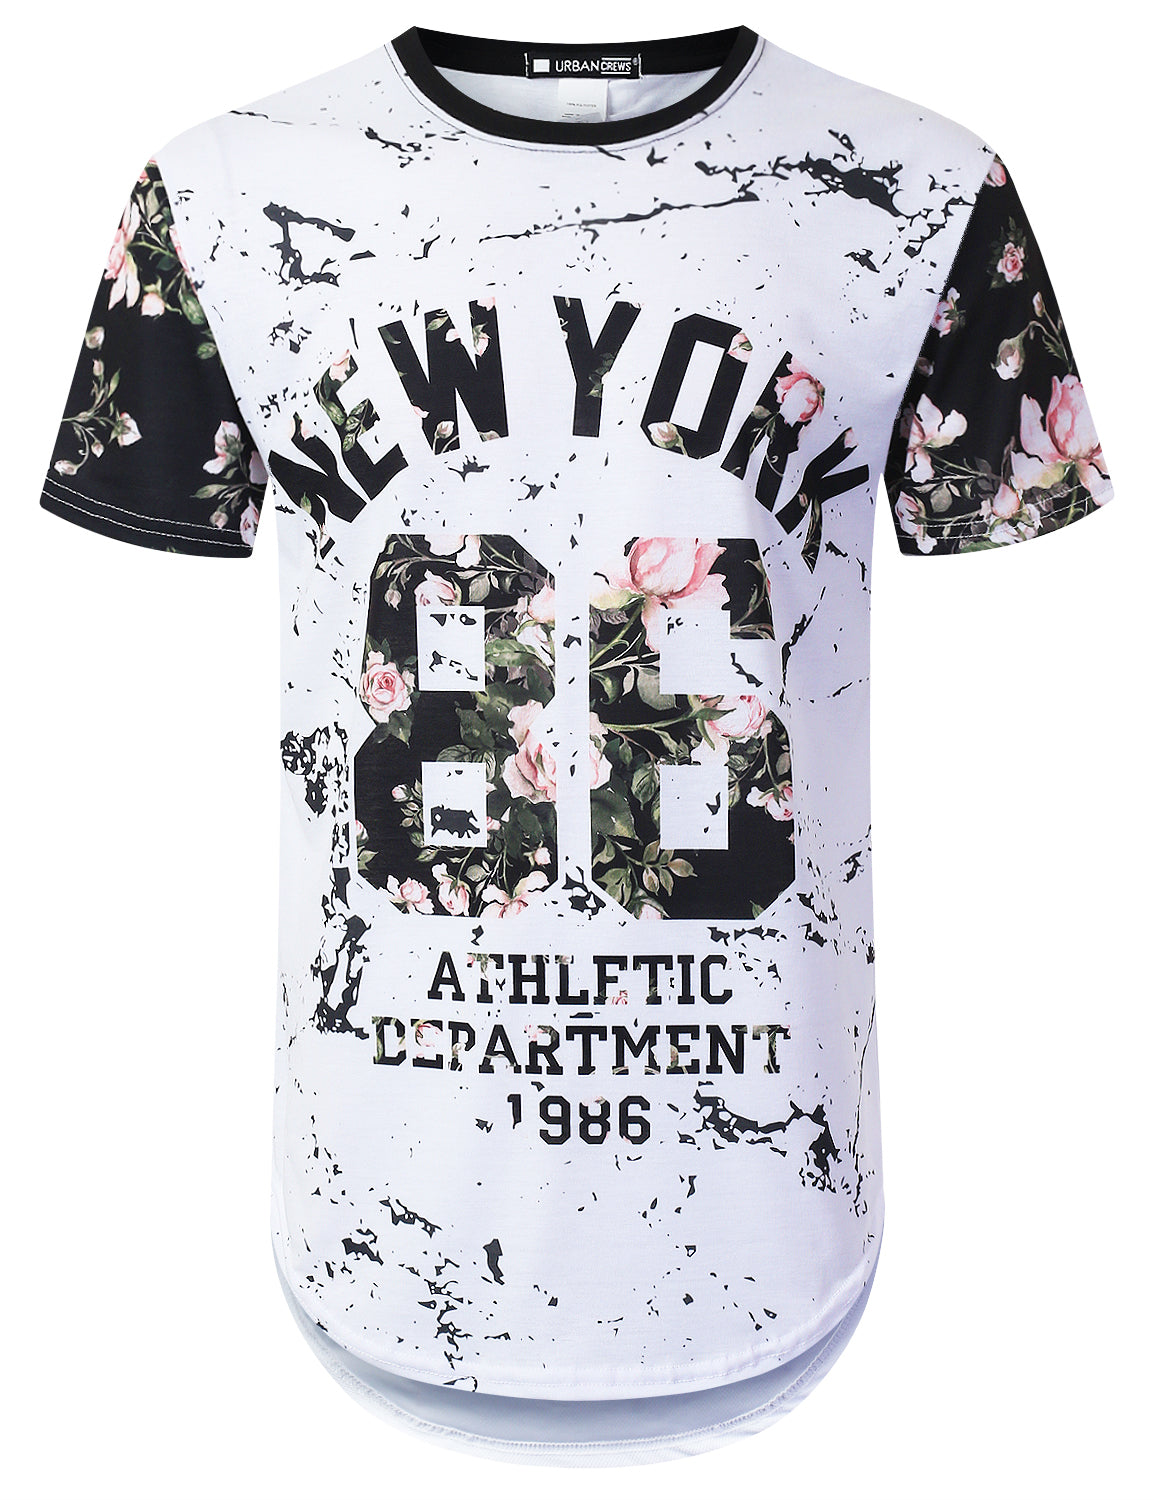 WHITE New York 86 Floral Longline T-shirt - URBANCREWS